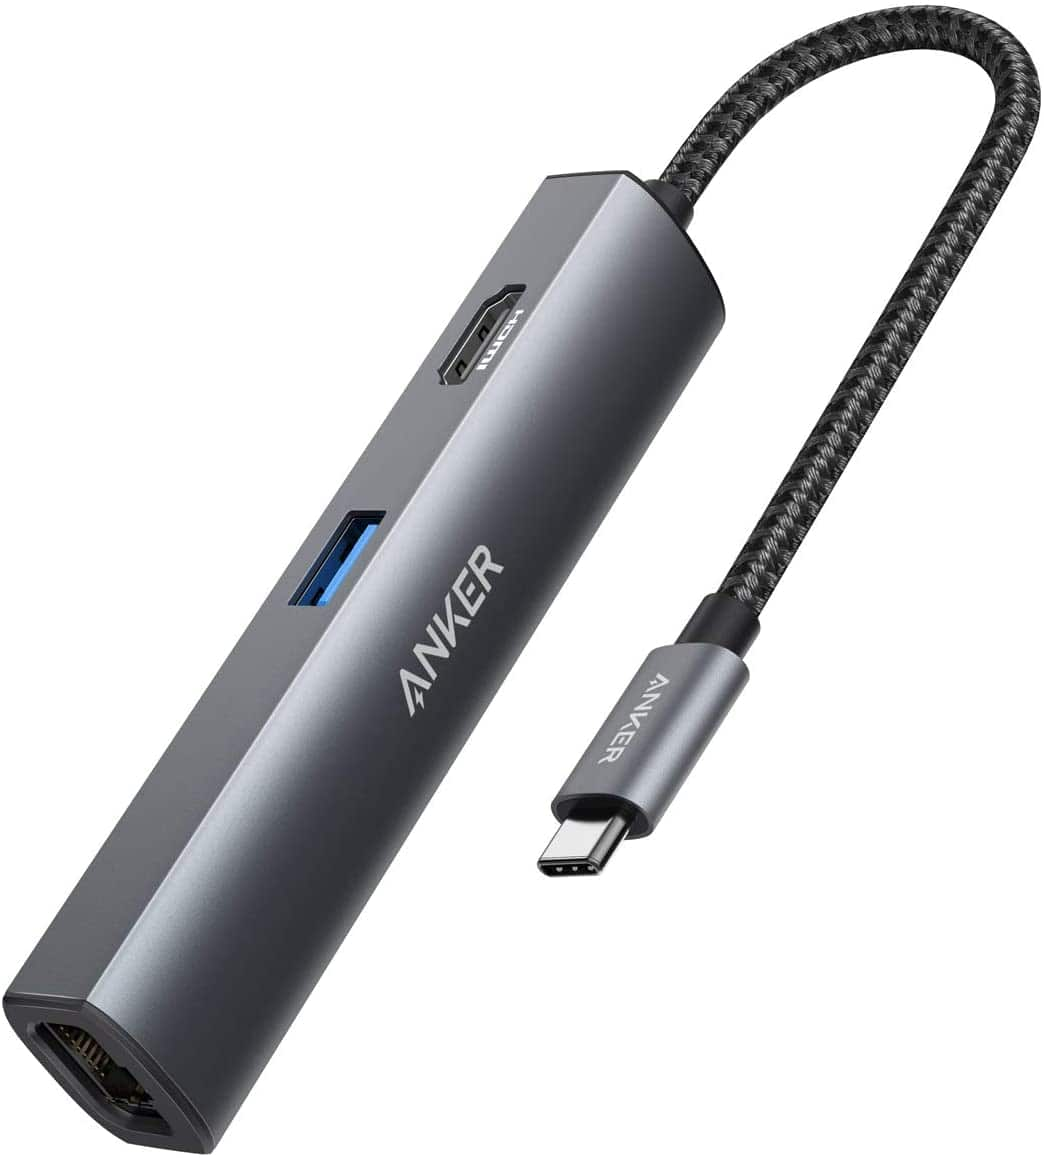 Anker PowerExpand+ 5-in-1 USB-C Hub, with 4K HDMI, 1Gbps Ethernet, 5Gbps Data Transfer $24.99 + FSSS